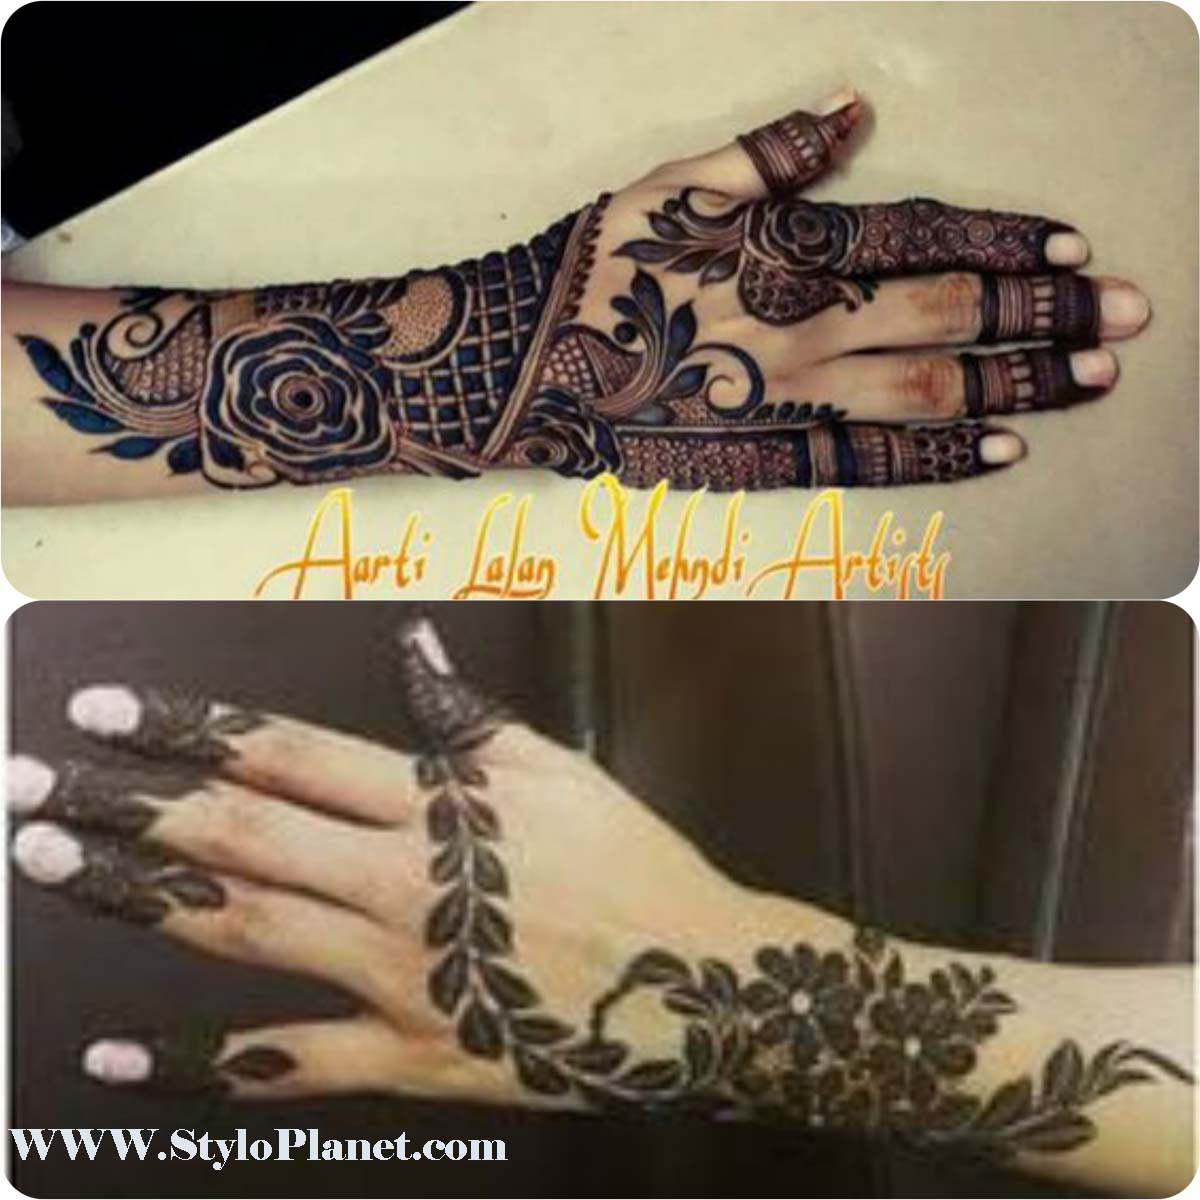 Mehndi Designs 2018 : Latest hand mehndi designs image gallery stylo planet